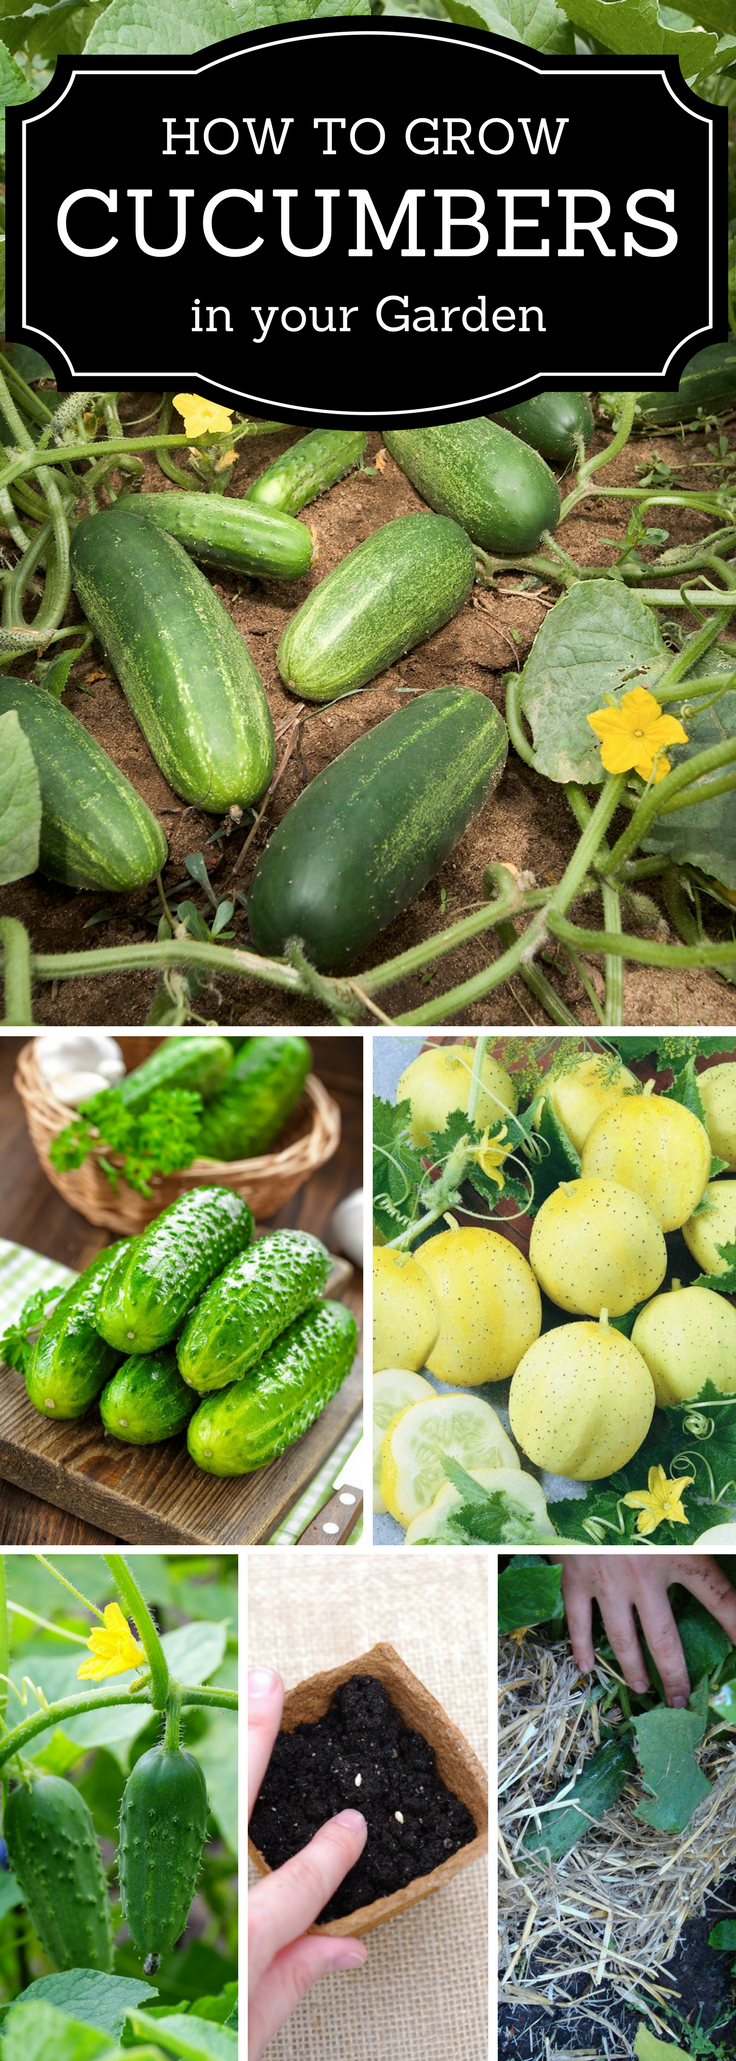 Ten Top Tips For Small Shady Urban Gardens: Top 10 Tips On Growing Cucumbers In The Home Garden